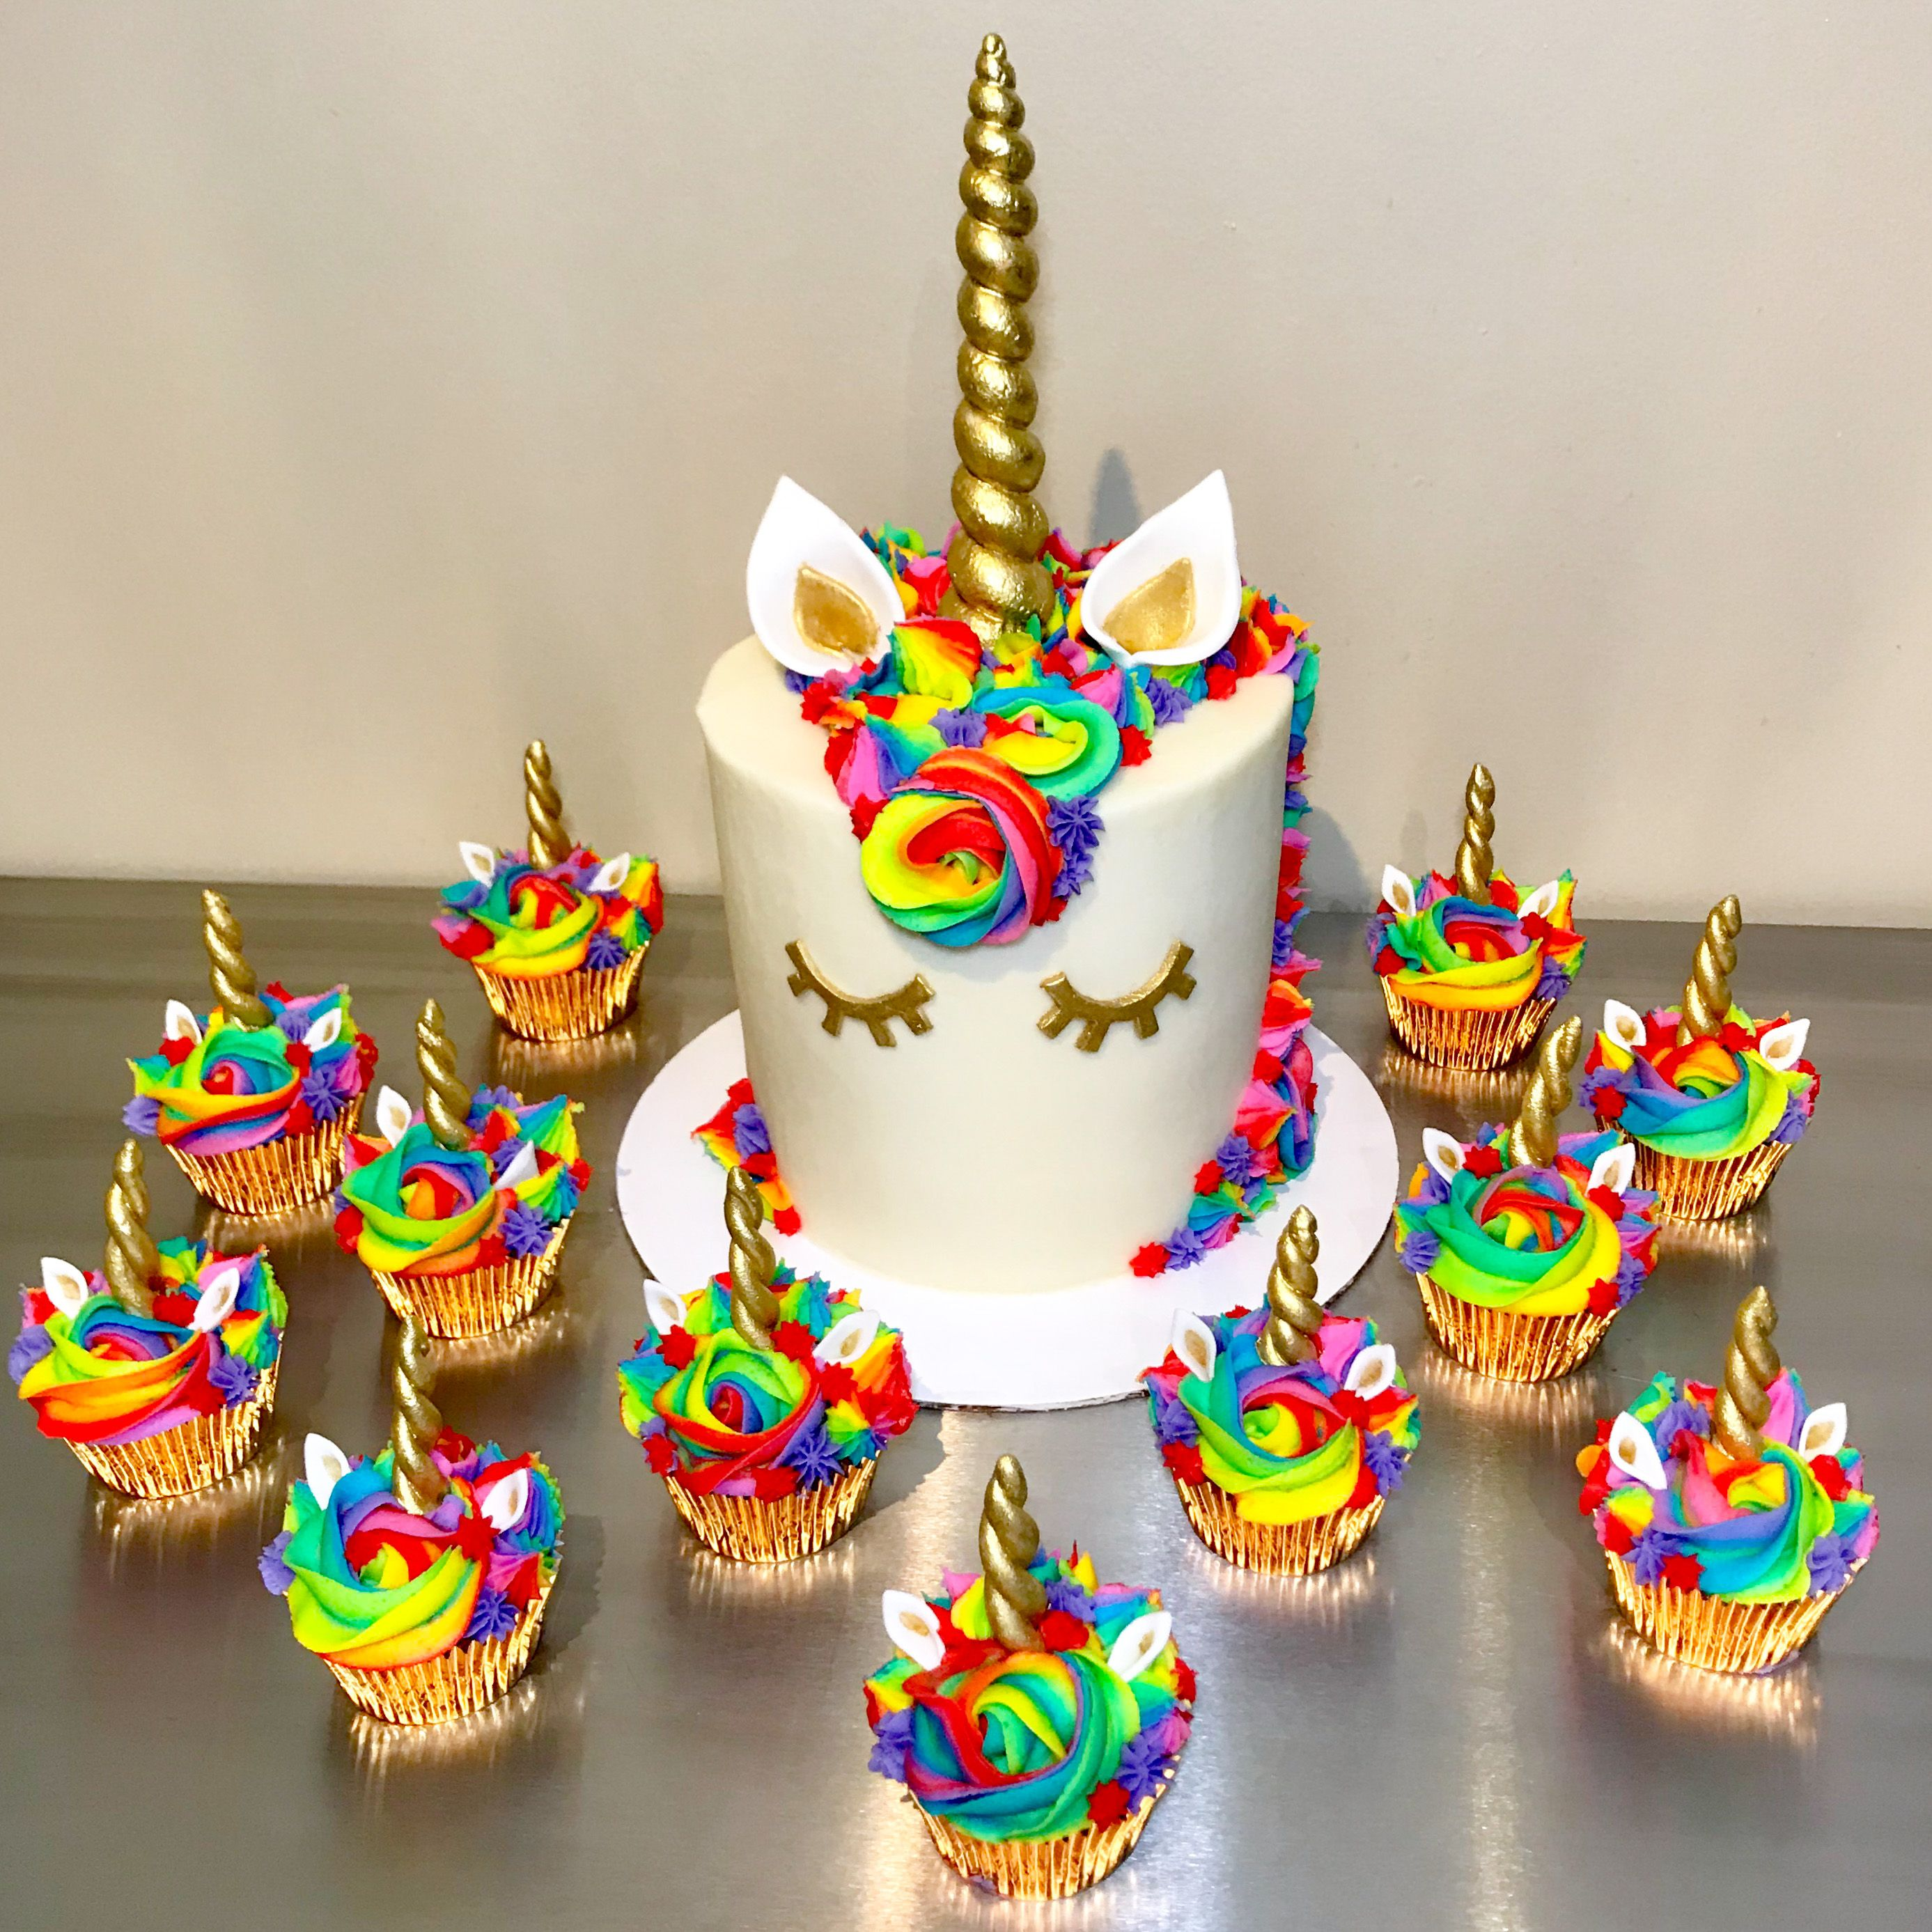 Rainbow Unicorn Cake and Cupcakes from @sakurabakingco